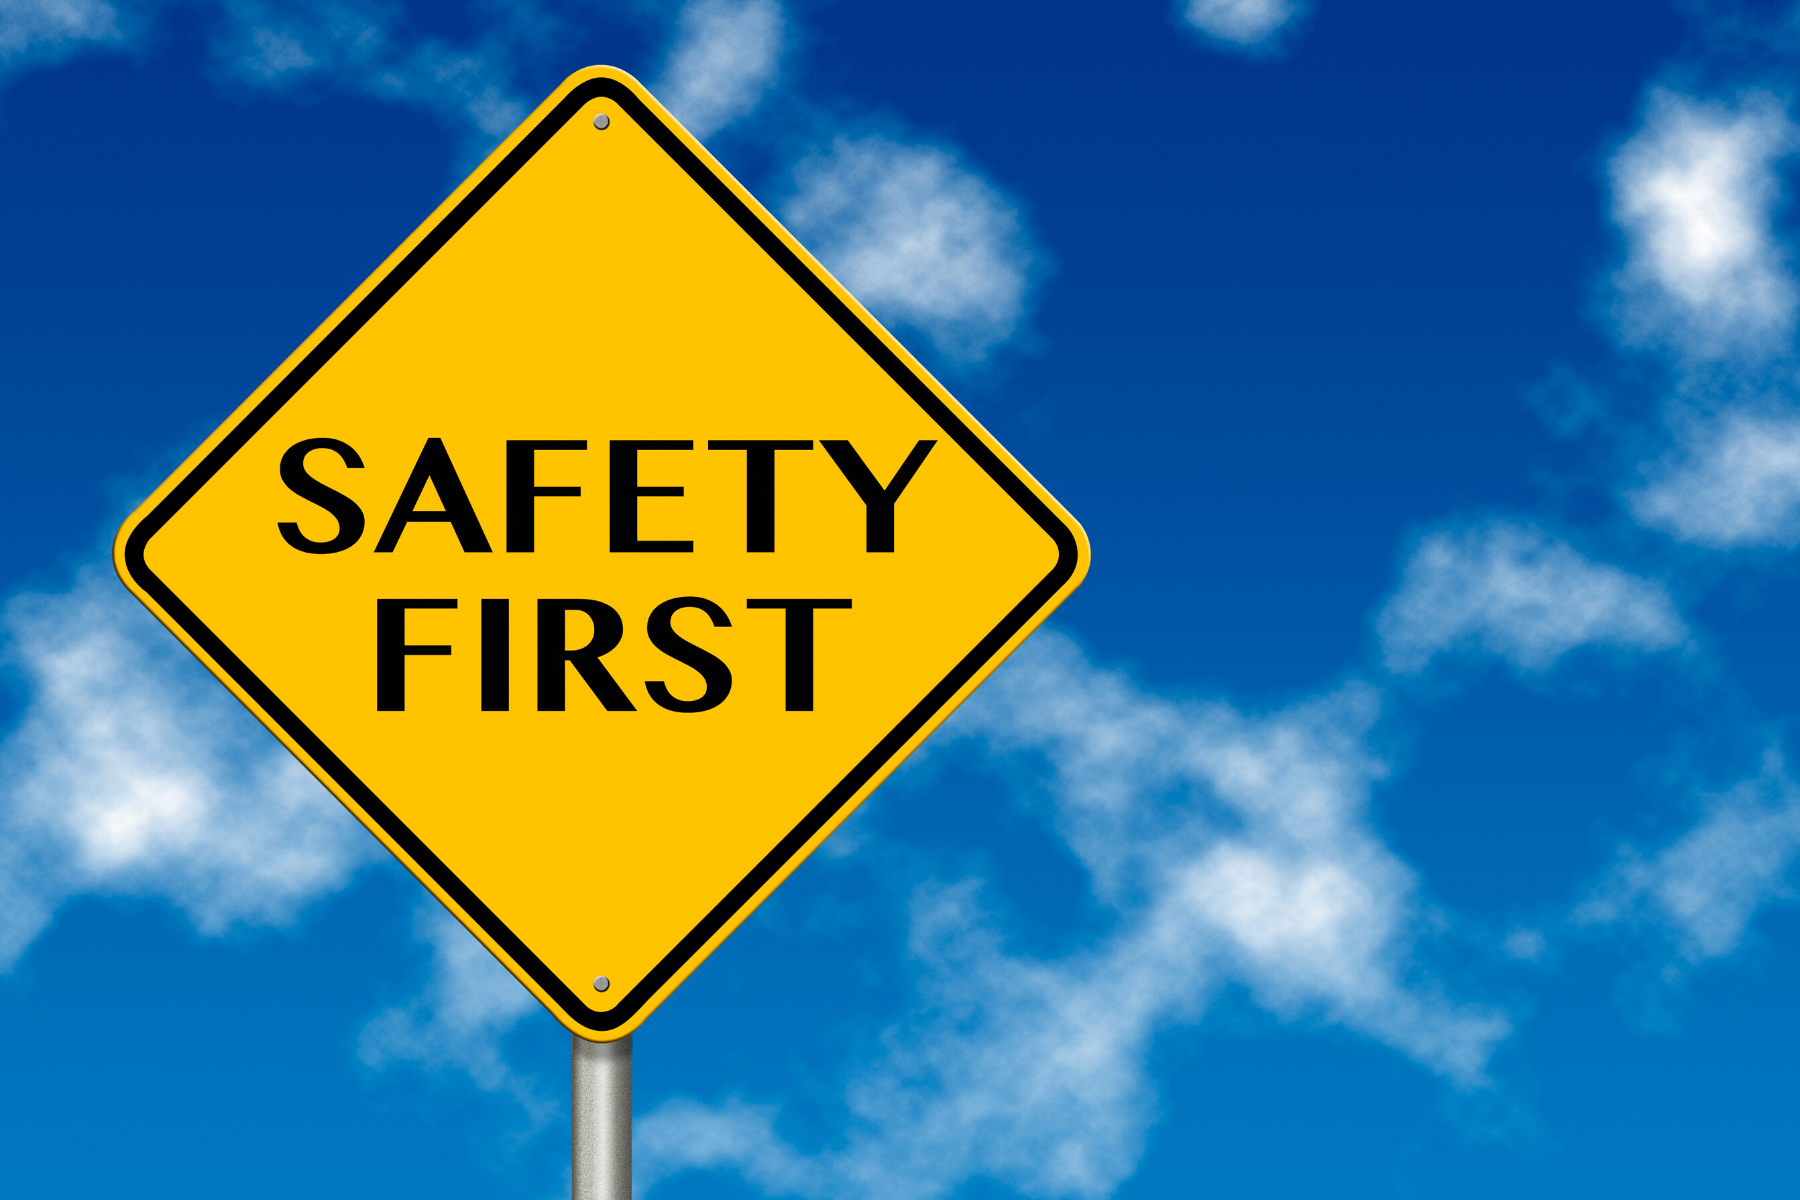 Regular Safety Reminders Can Reduce Losses